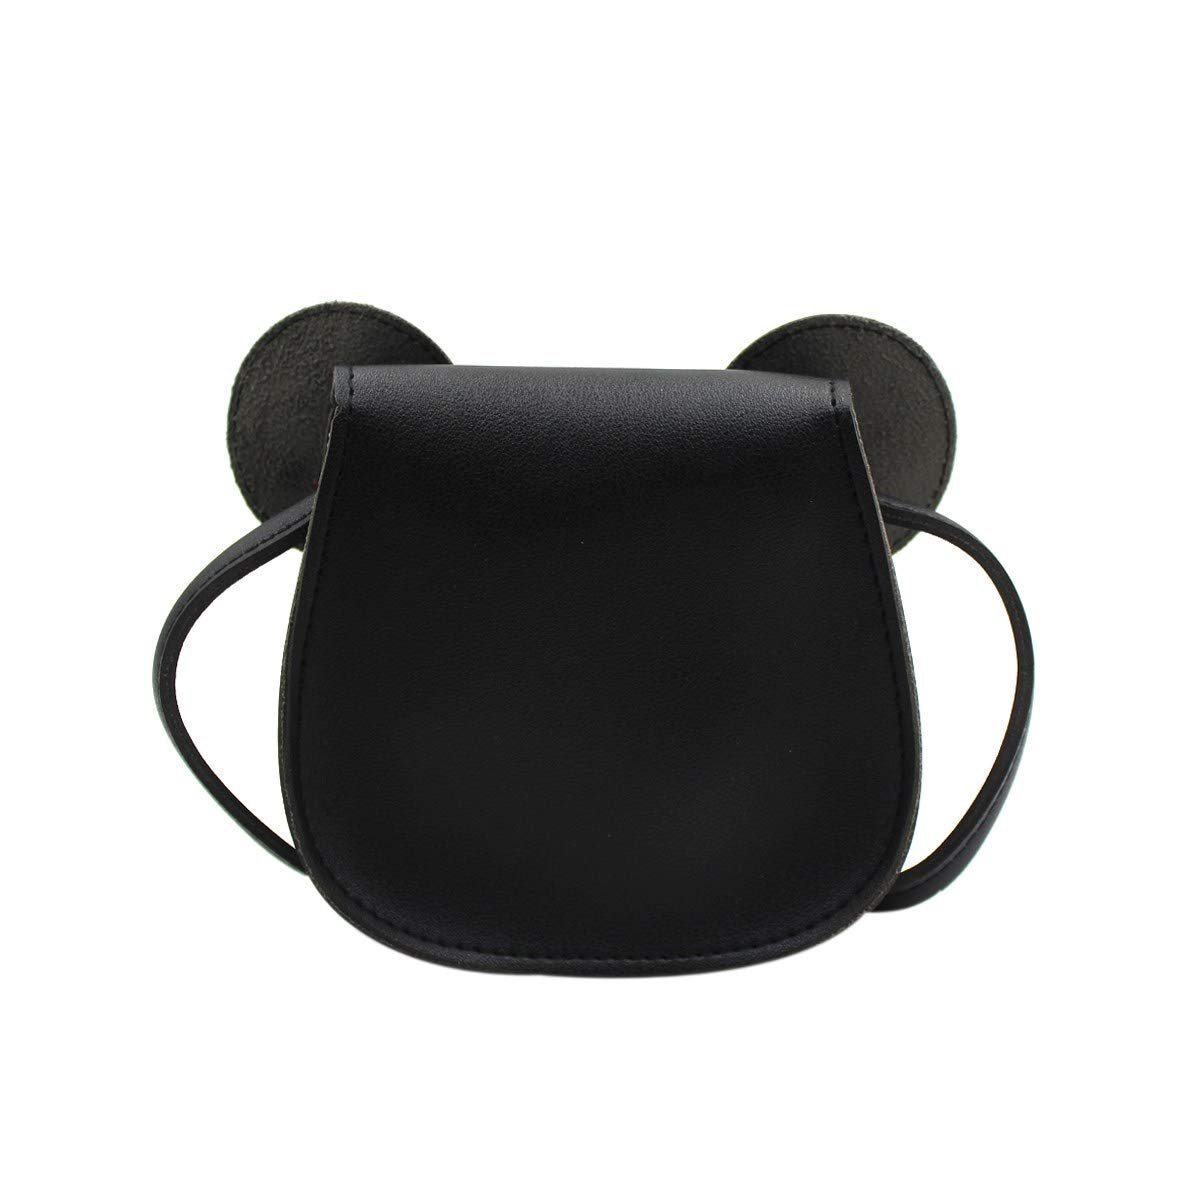 ZGMYC Kids Toddlers Bowknot Crossbody Purse Small Shoulder Bag Satchel with Cartoon Ears by ZGMYC (Image #3)